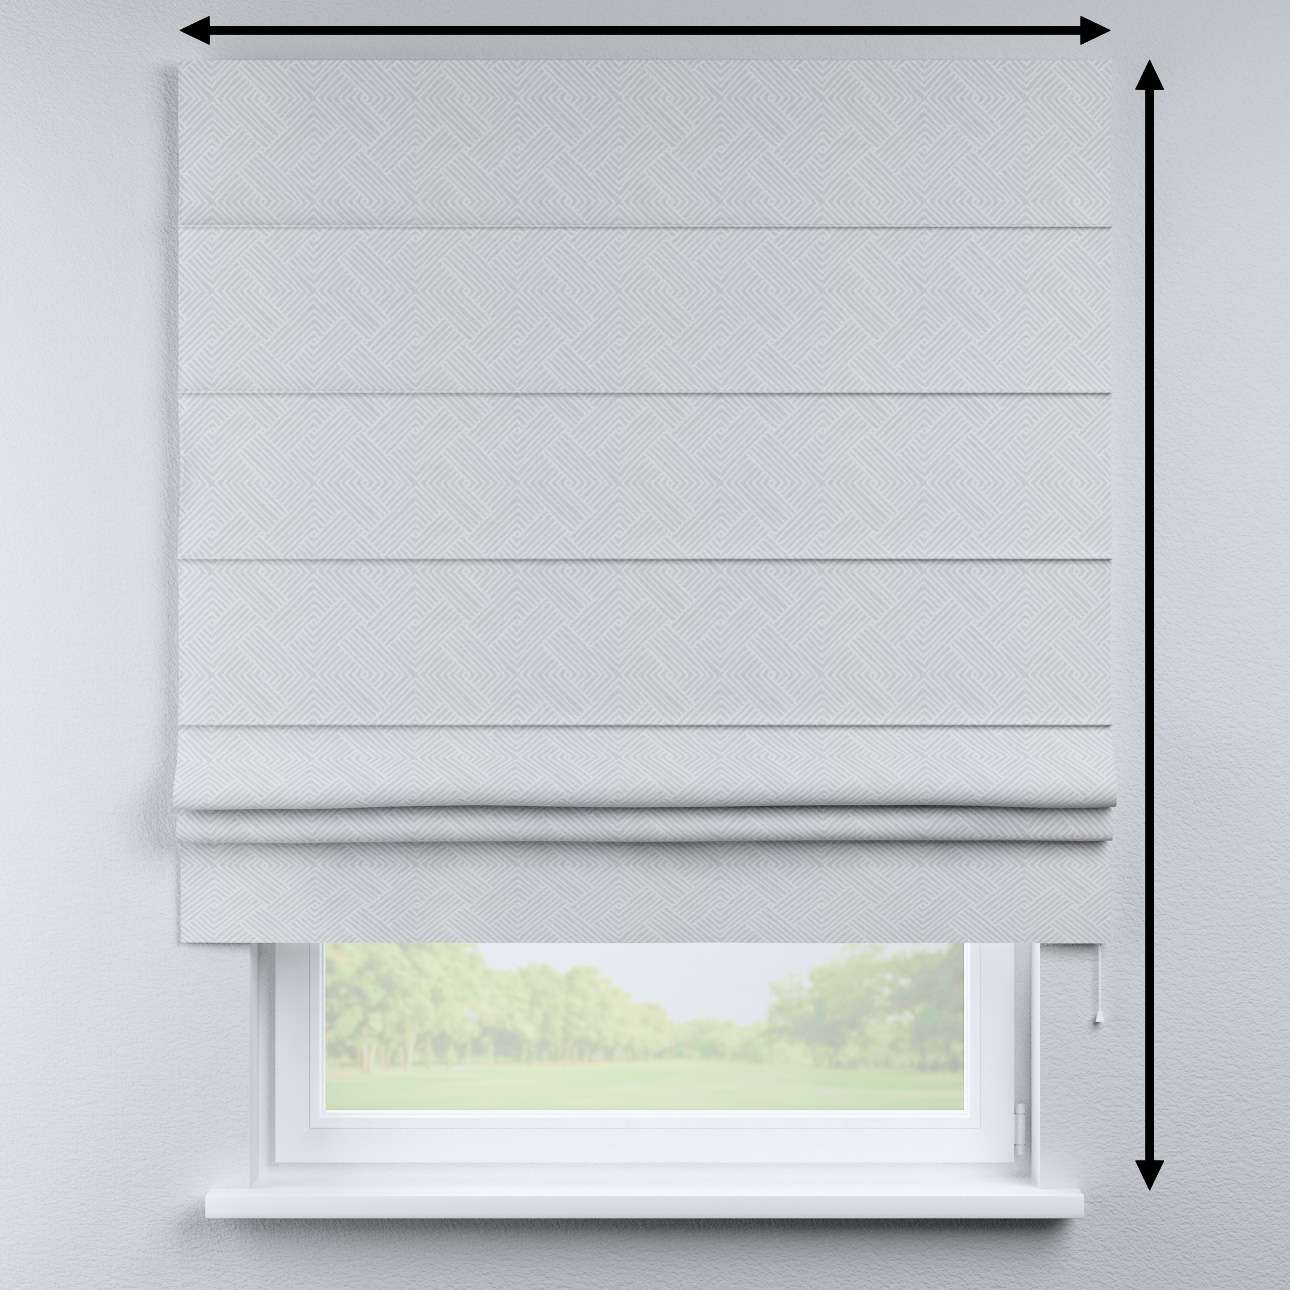 Padva roman blind in collection Sunny, fabric: 143-43